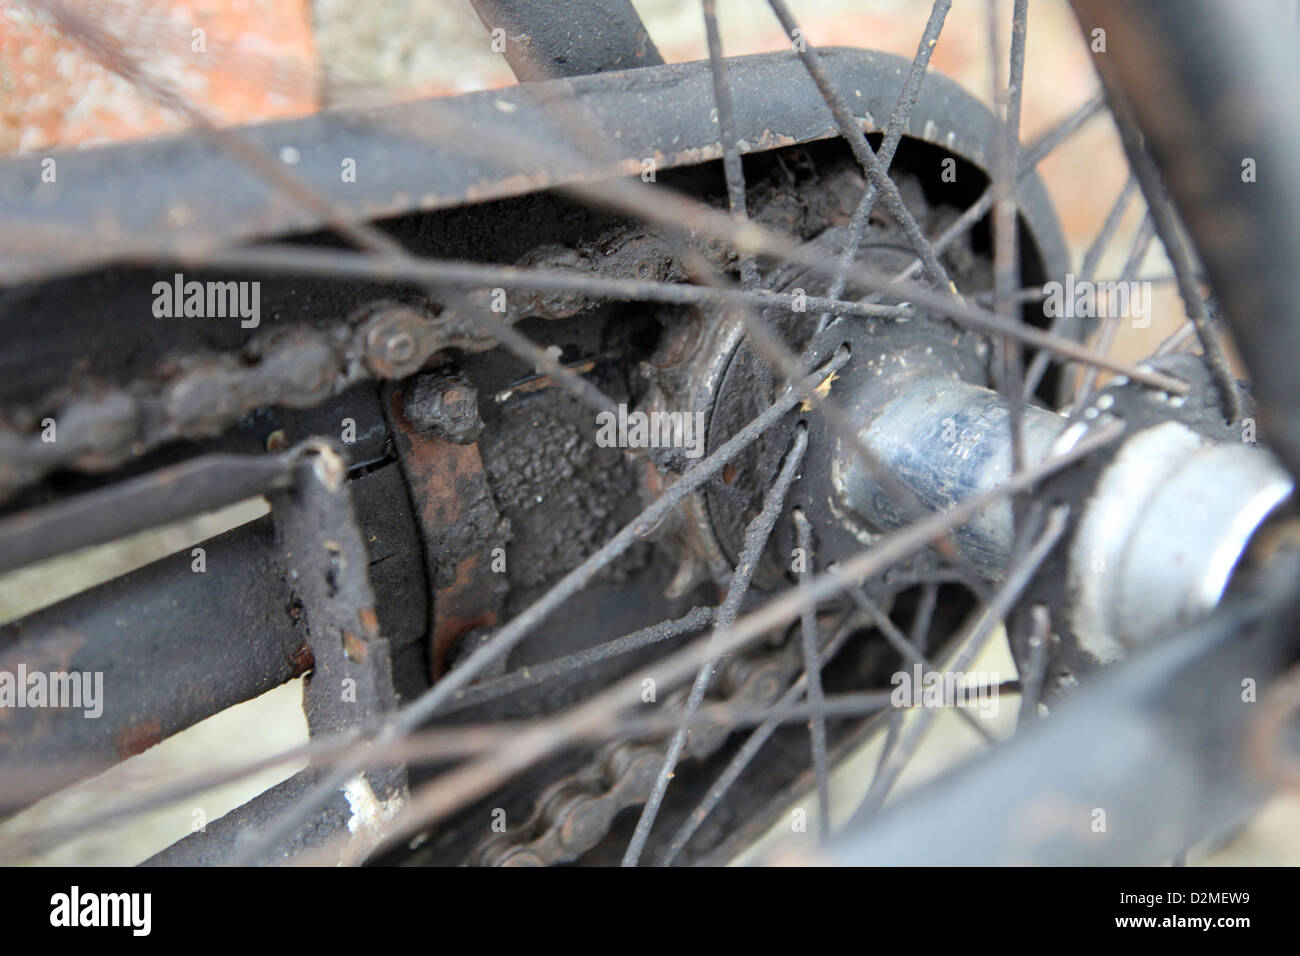 Rusty Bike Chain Stockfotos & Rusty Bike Chain Bilder - Alamy